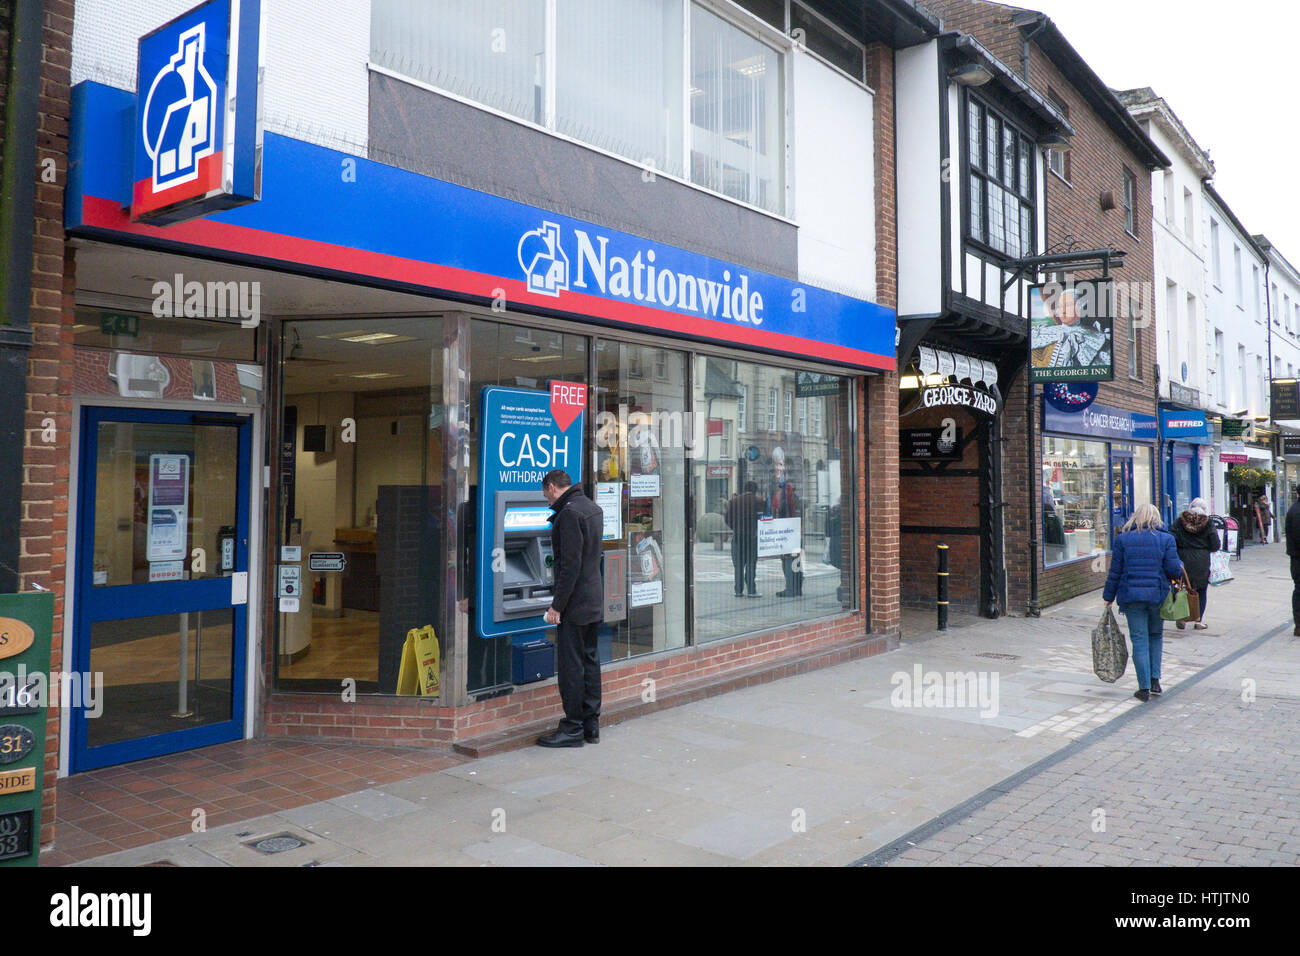 Nationwide Bank In Andover. Nationwide Building Society is a British mutual financial institution and the largest - Stock Image